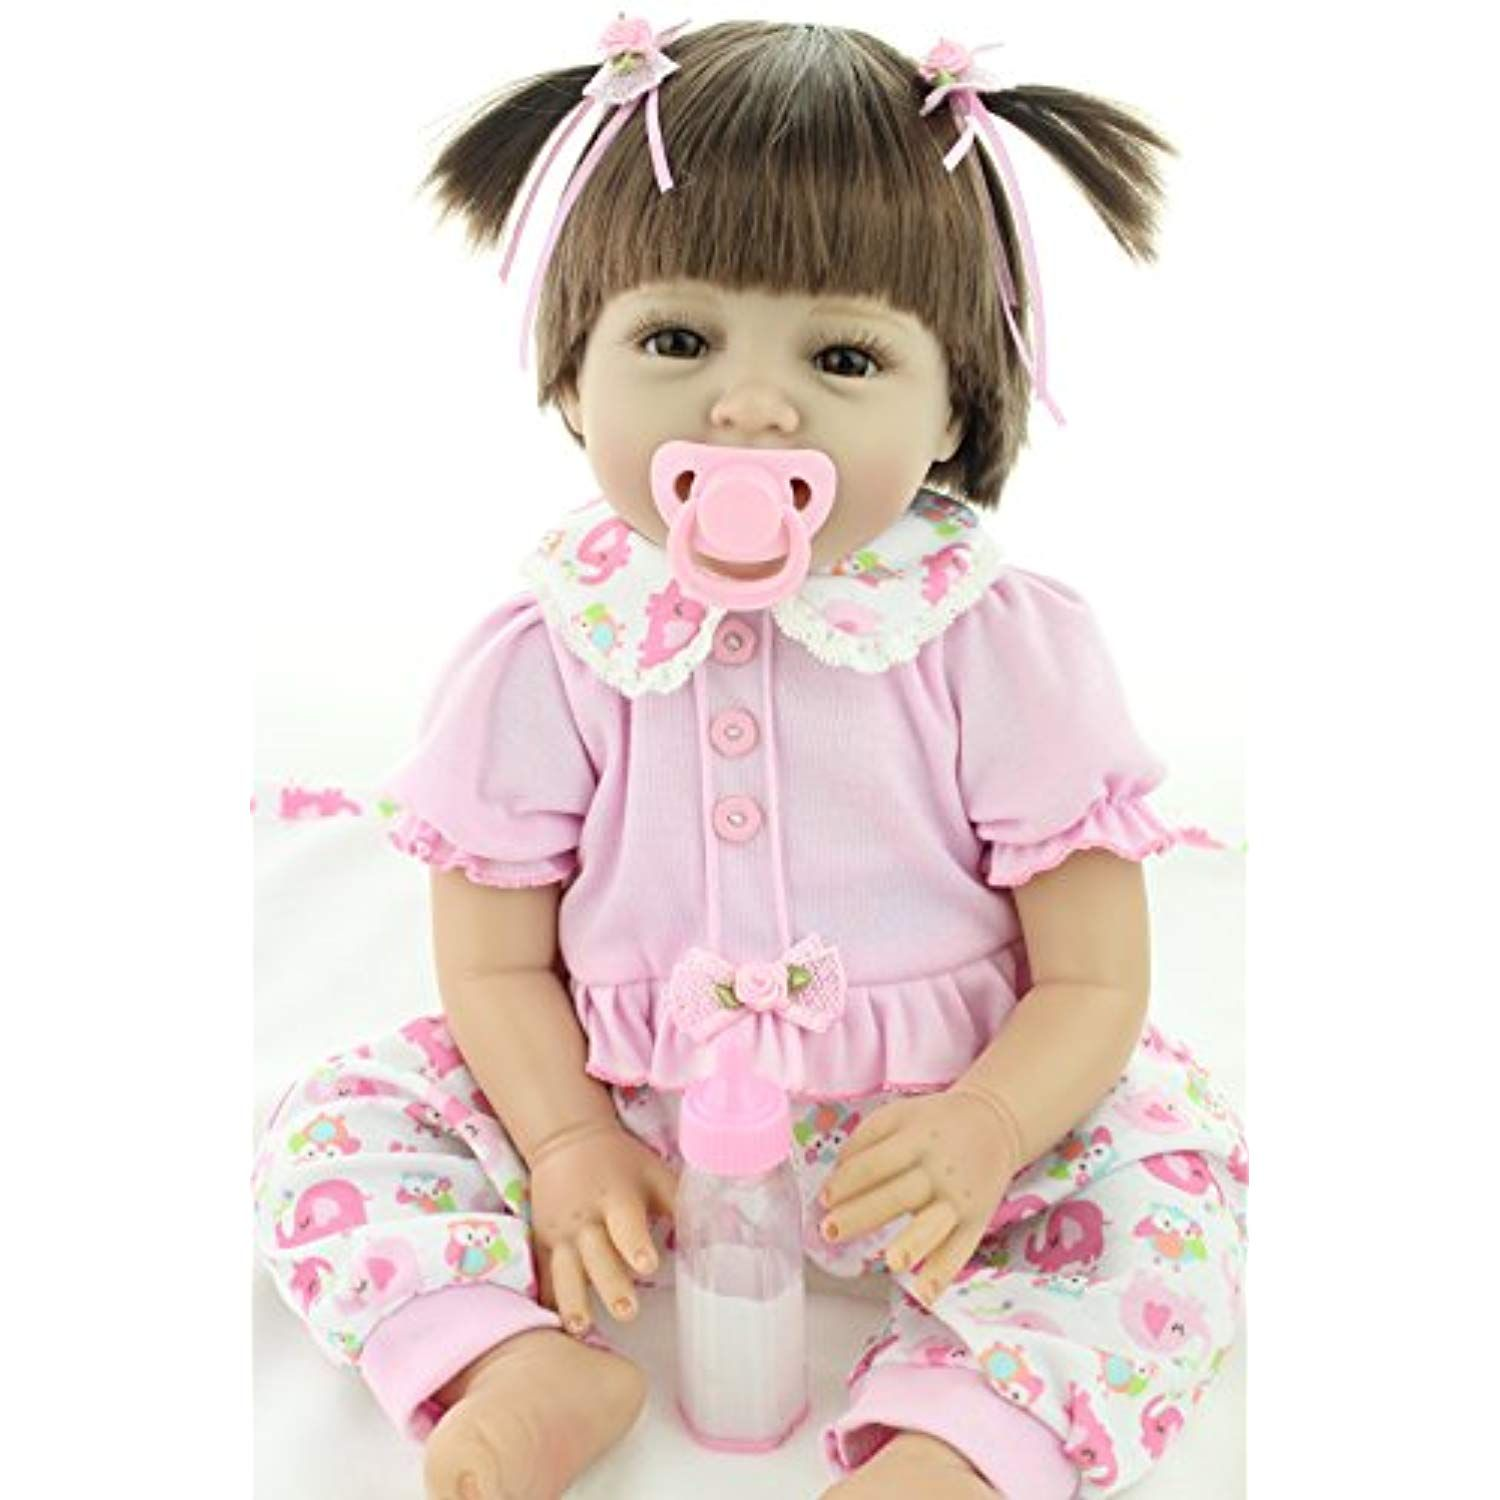 22Inch 55cm Real Life Like Reborn Baby Doll Gift Realistic Looking Baby Girl